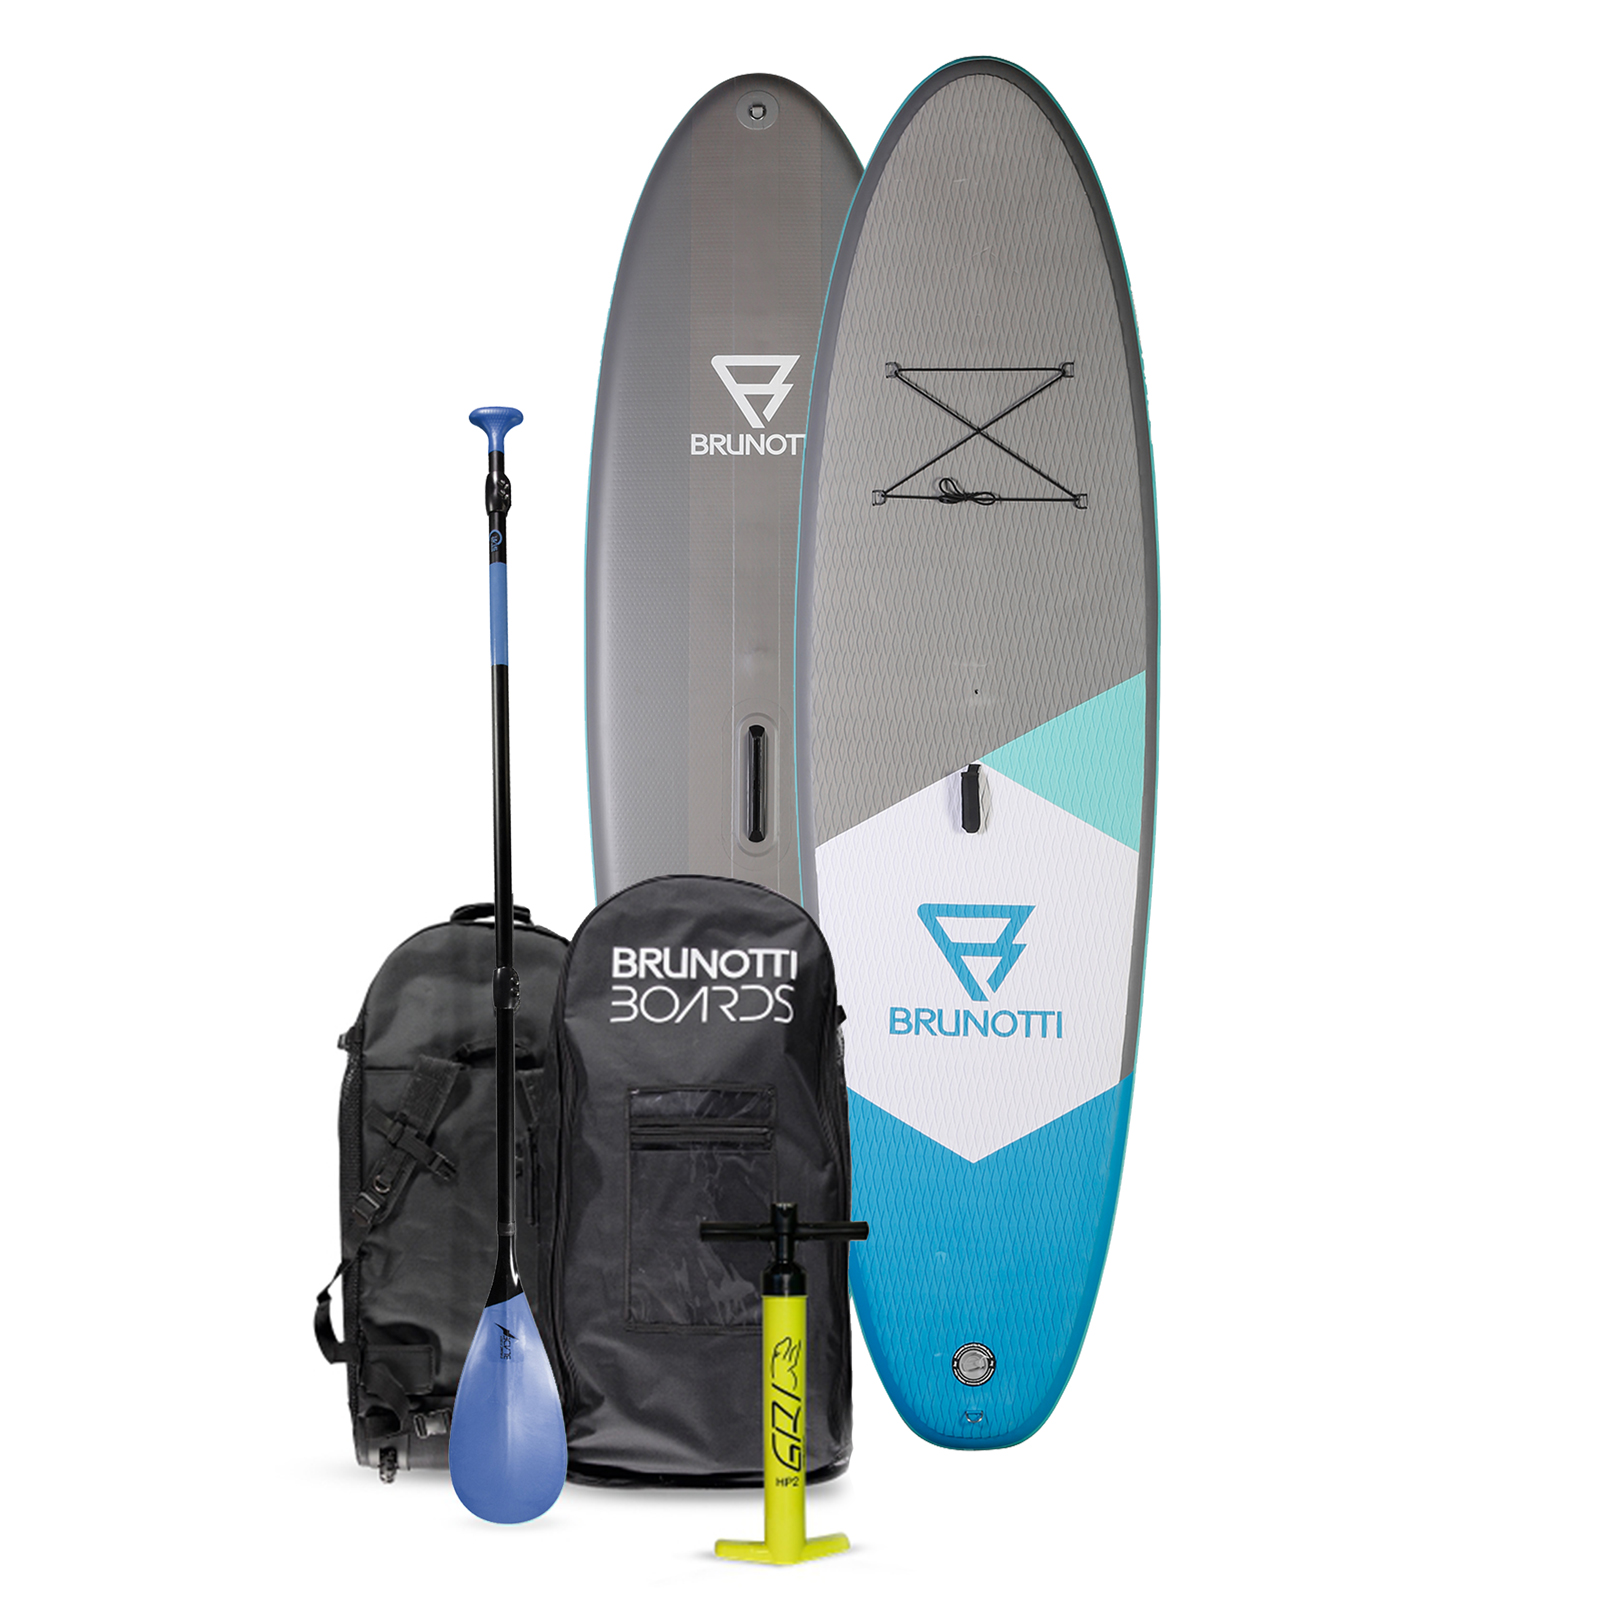 BIG BASTARD 10'6 ISUP BOARD PACKAGE W/PADDLE / BLUE BRUNOTTI 2017